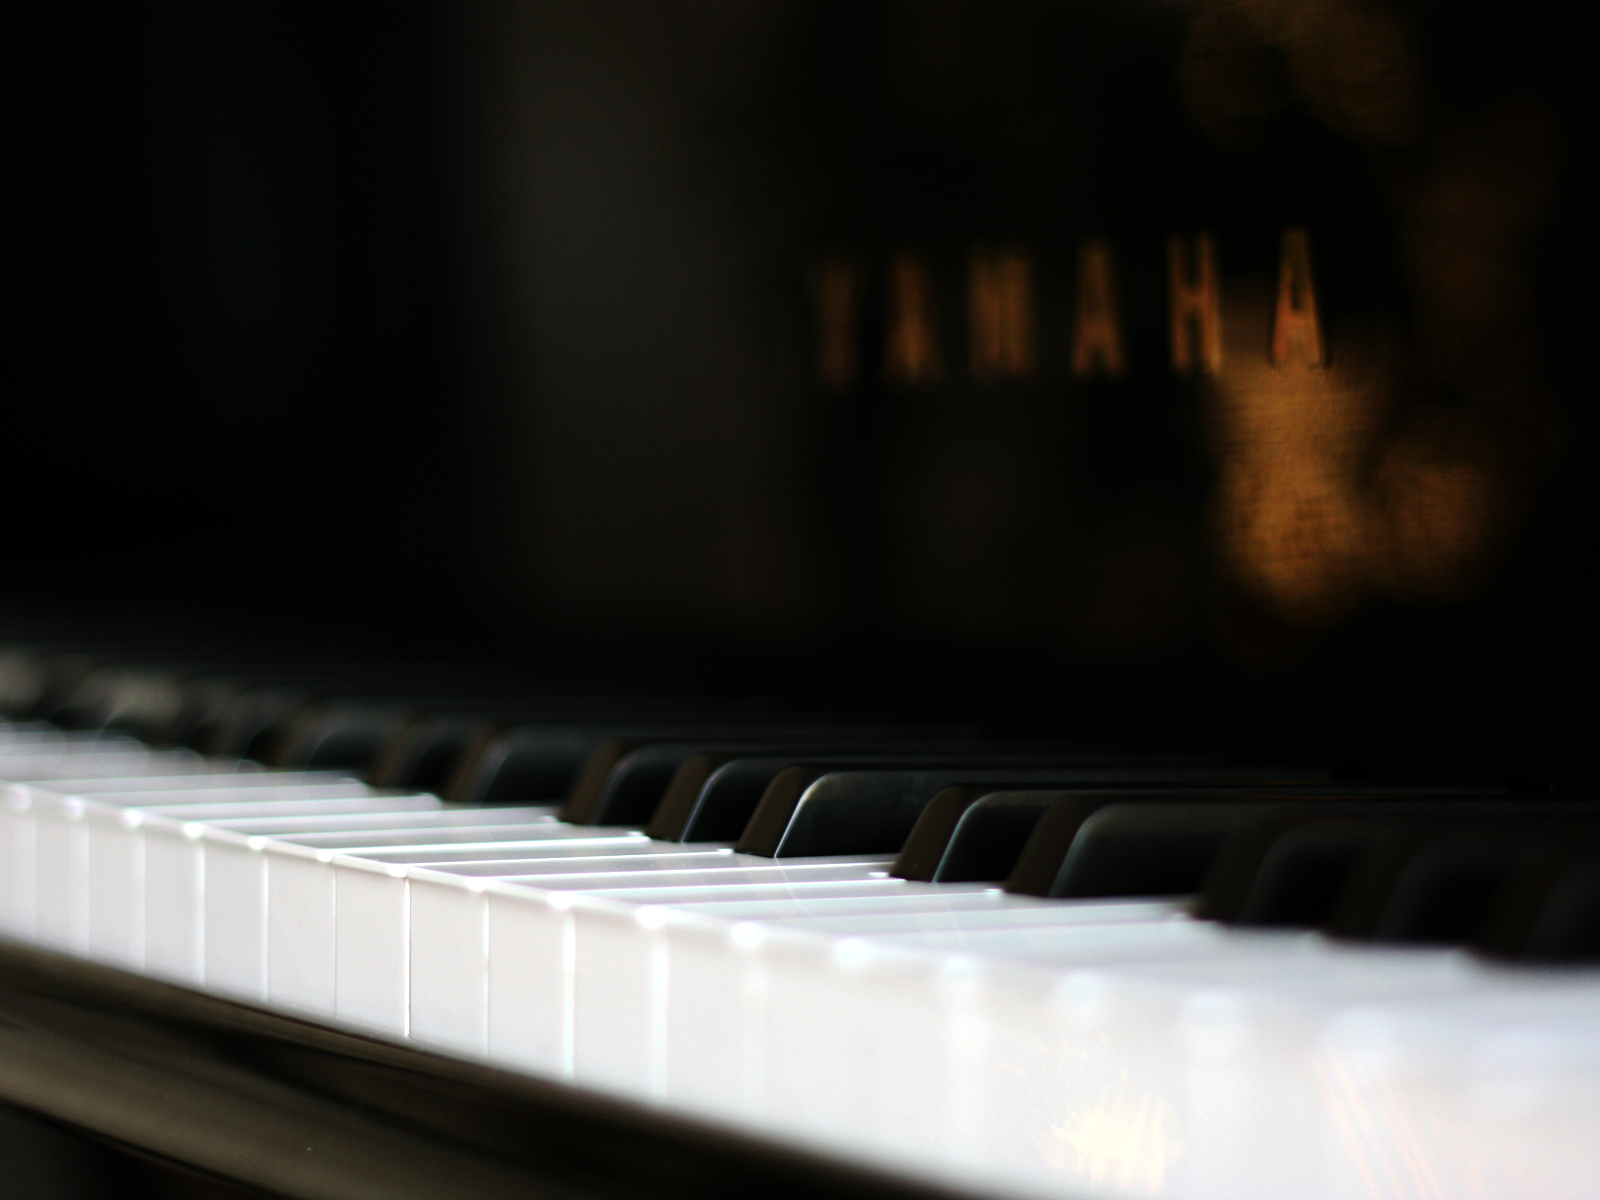 Yamaha piano keyboard close up blurred hd wallpaper